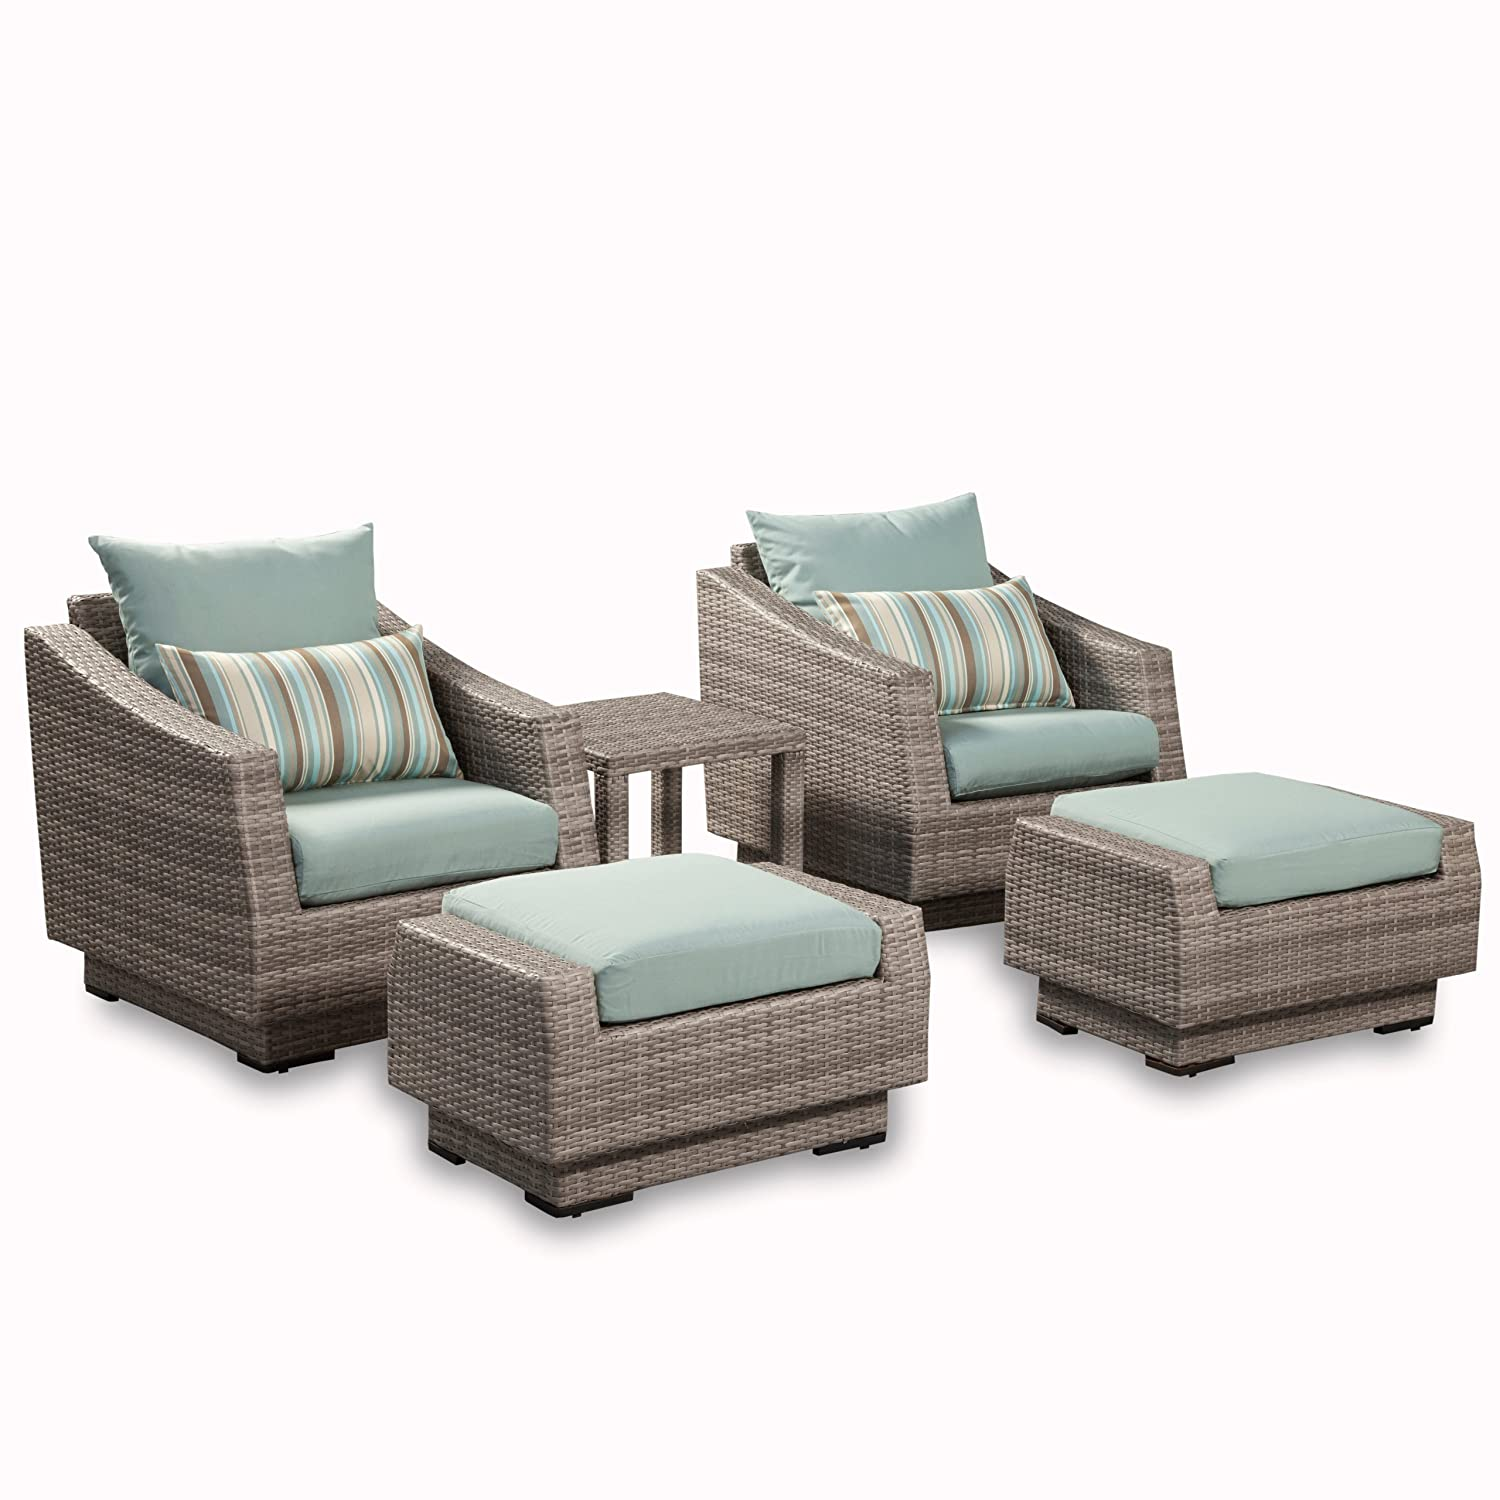 Amazon.com  RST Brands 5-Piece Cannes Club Chair and Ottoman Patio Furniture Set Bliss Blue  Garden u0026 Outdoor  sc 1 st  Amazon.com & Amazon.com : RST Brands 5-Piece Cannes Club Chair and Ottoman Patio ...